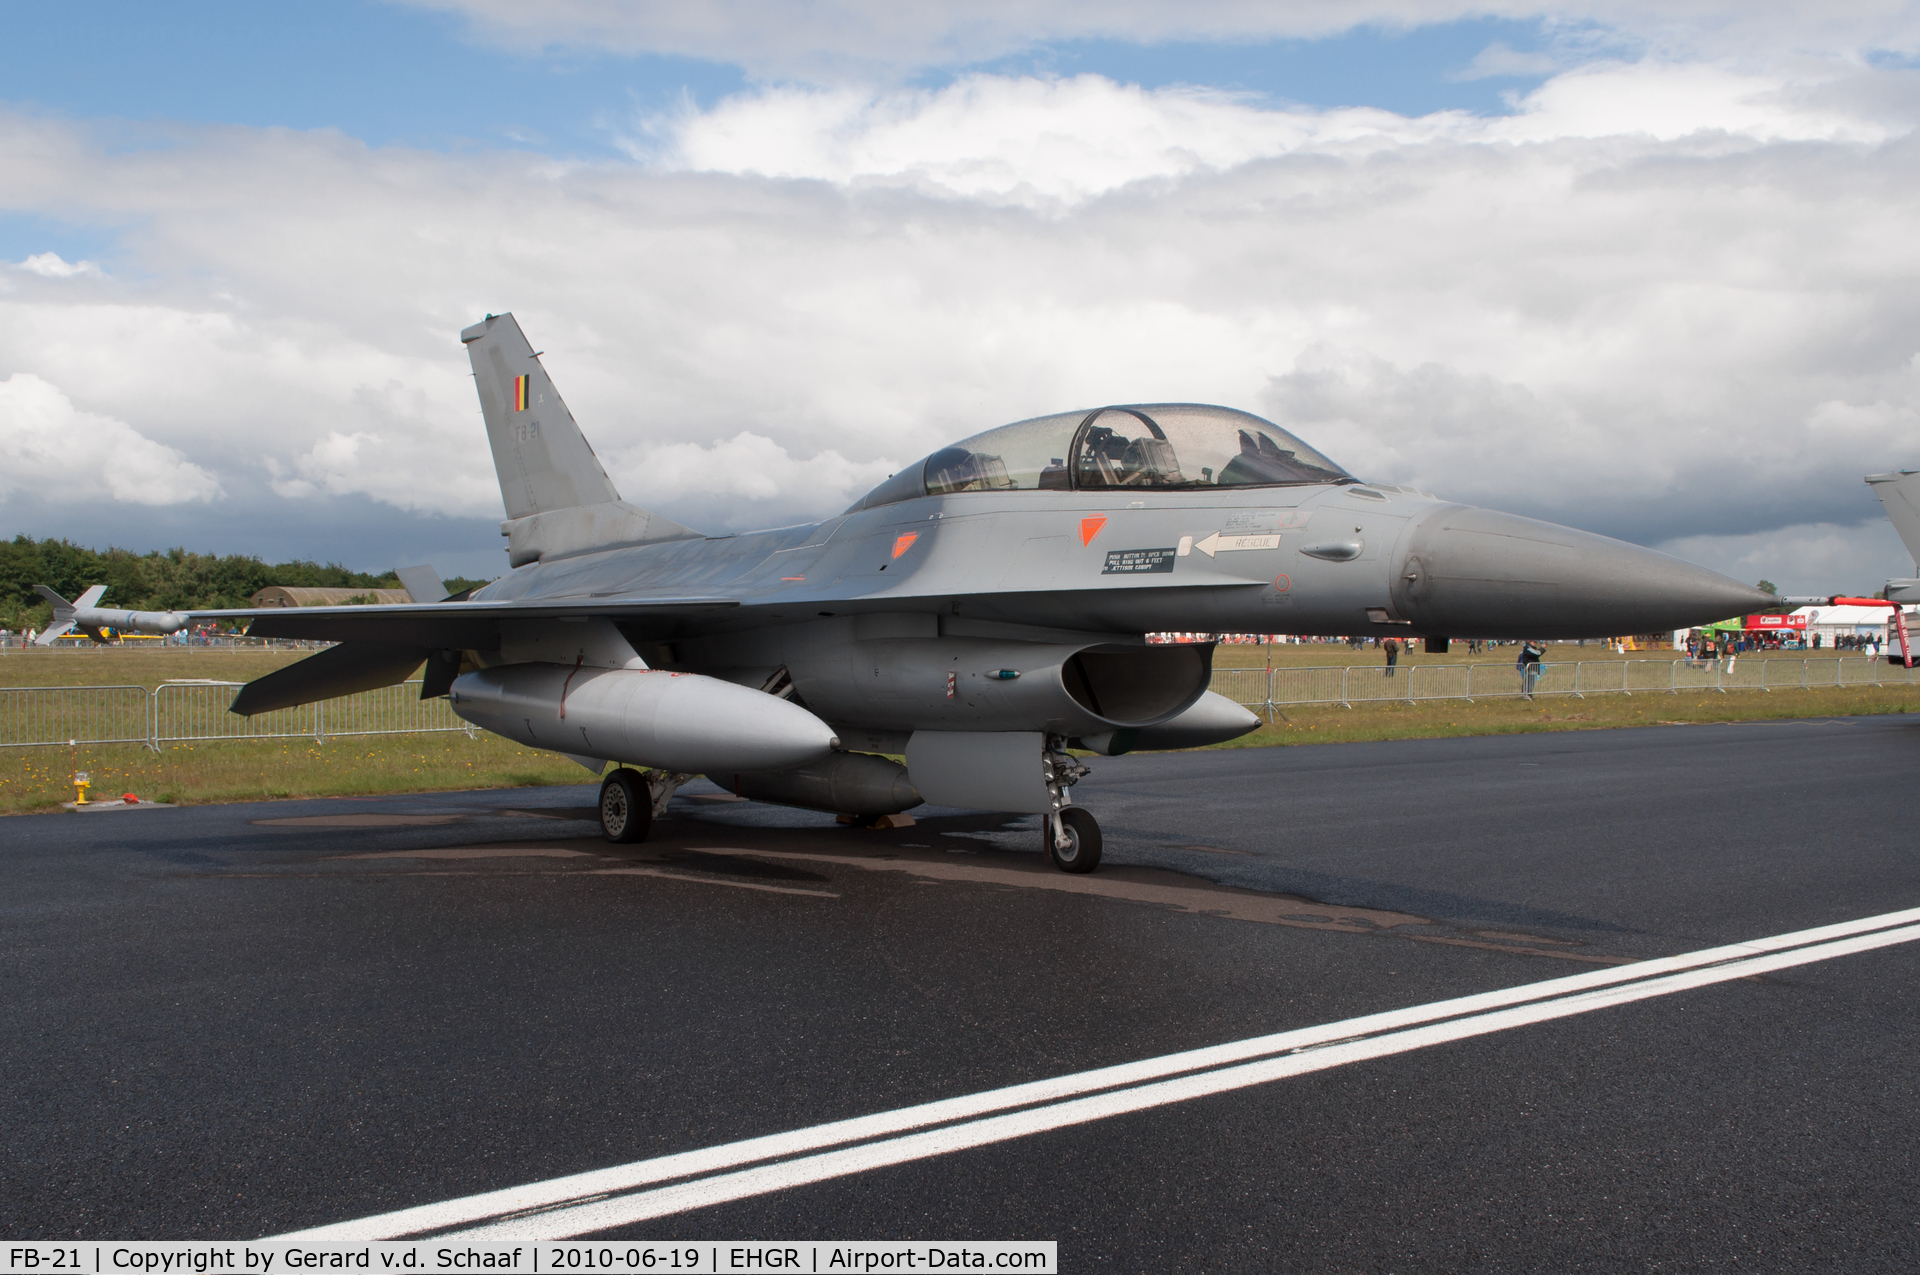 FB-21, General Dynamics F-16B Fighting Falcon C/N 6J-21, Gilze-Rijen, June 2010